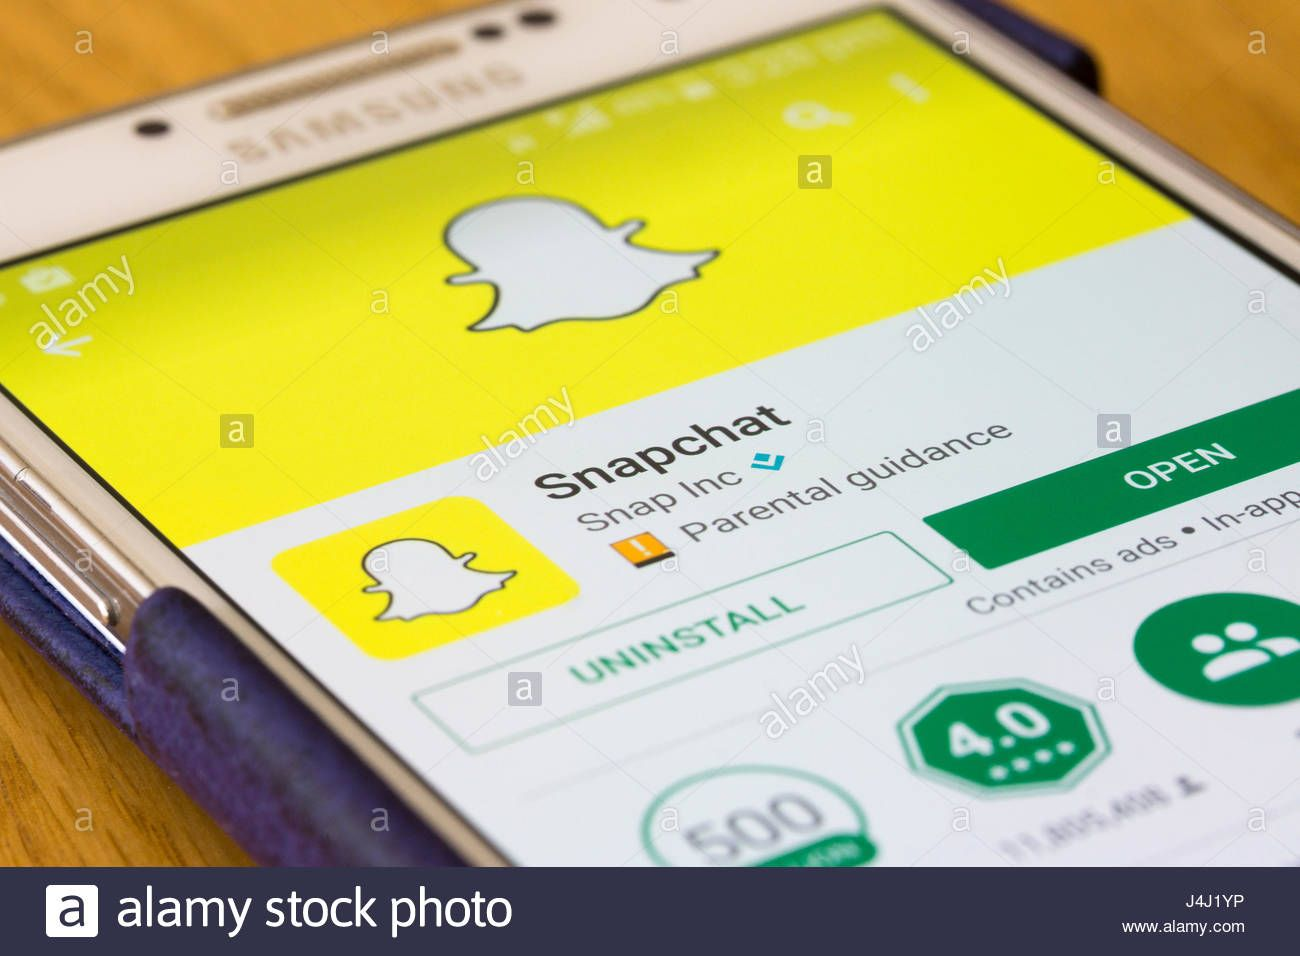 Download this stock image A closeup on the Snapchat app